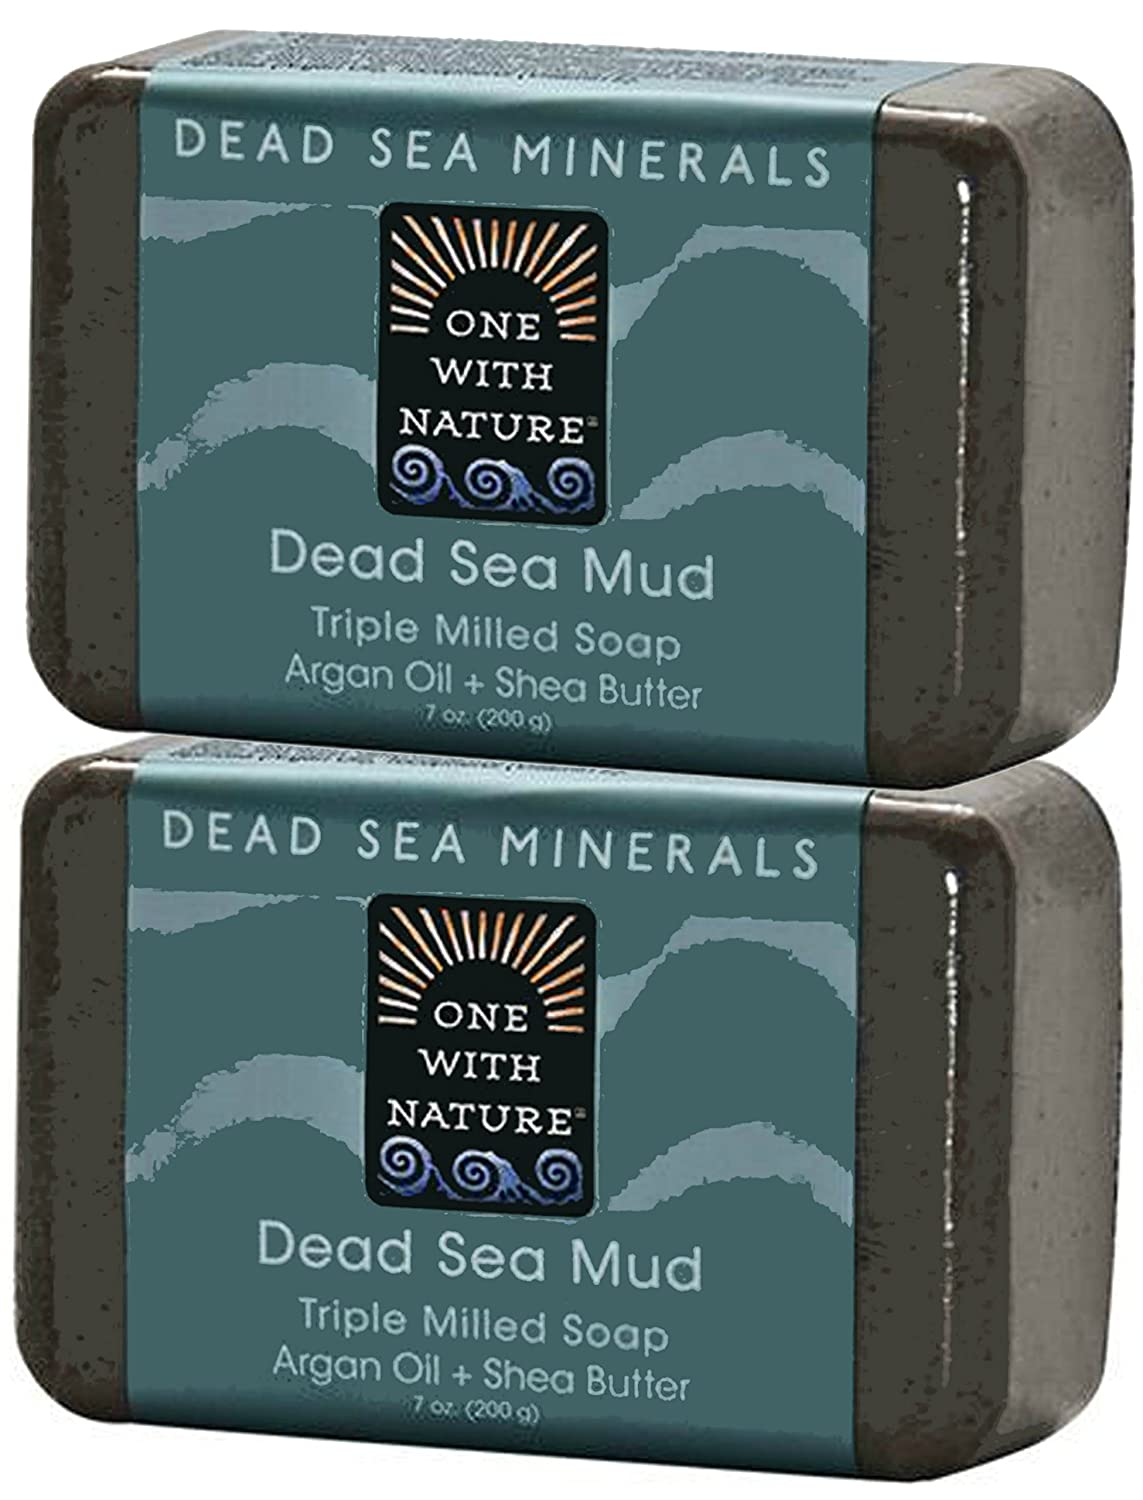 One With Nature Dead Sea Salt Mud Argan Oil and Shea Butter Triple Milled Soap (Pack of 2)